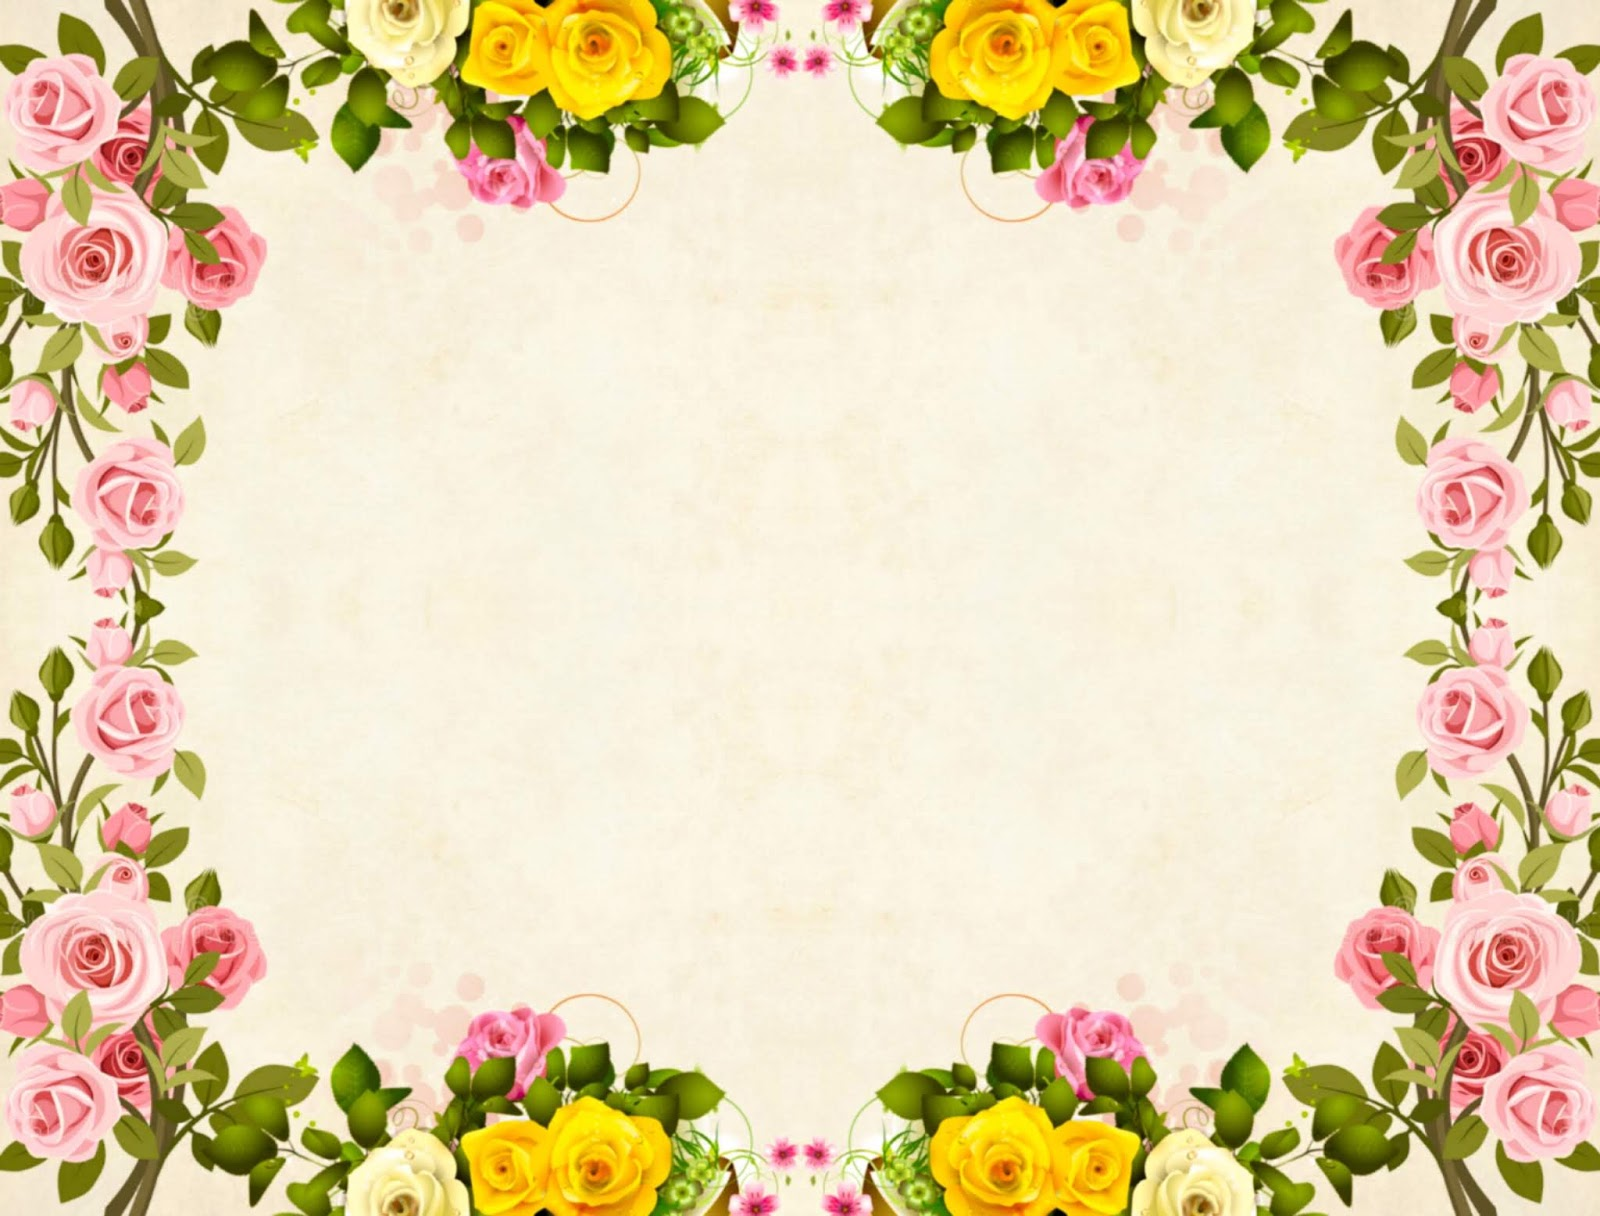 Flower Background Free Illustration